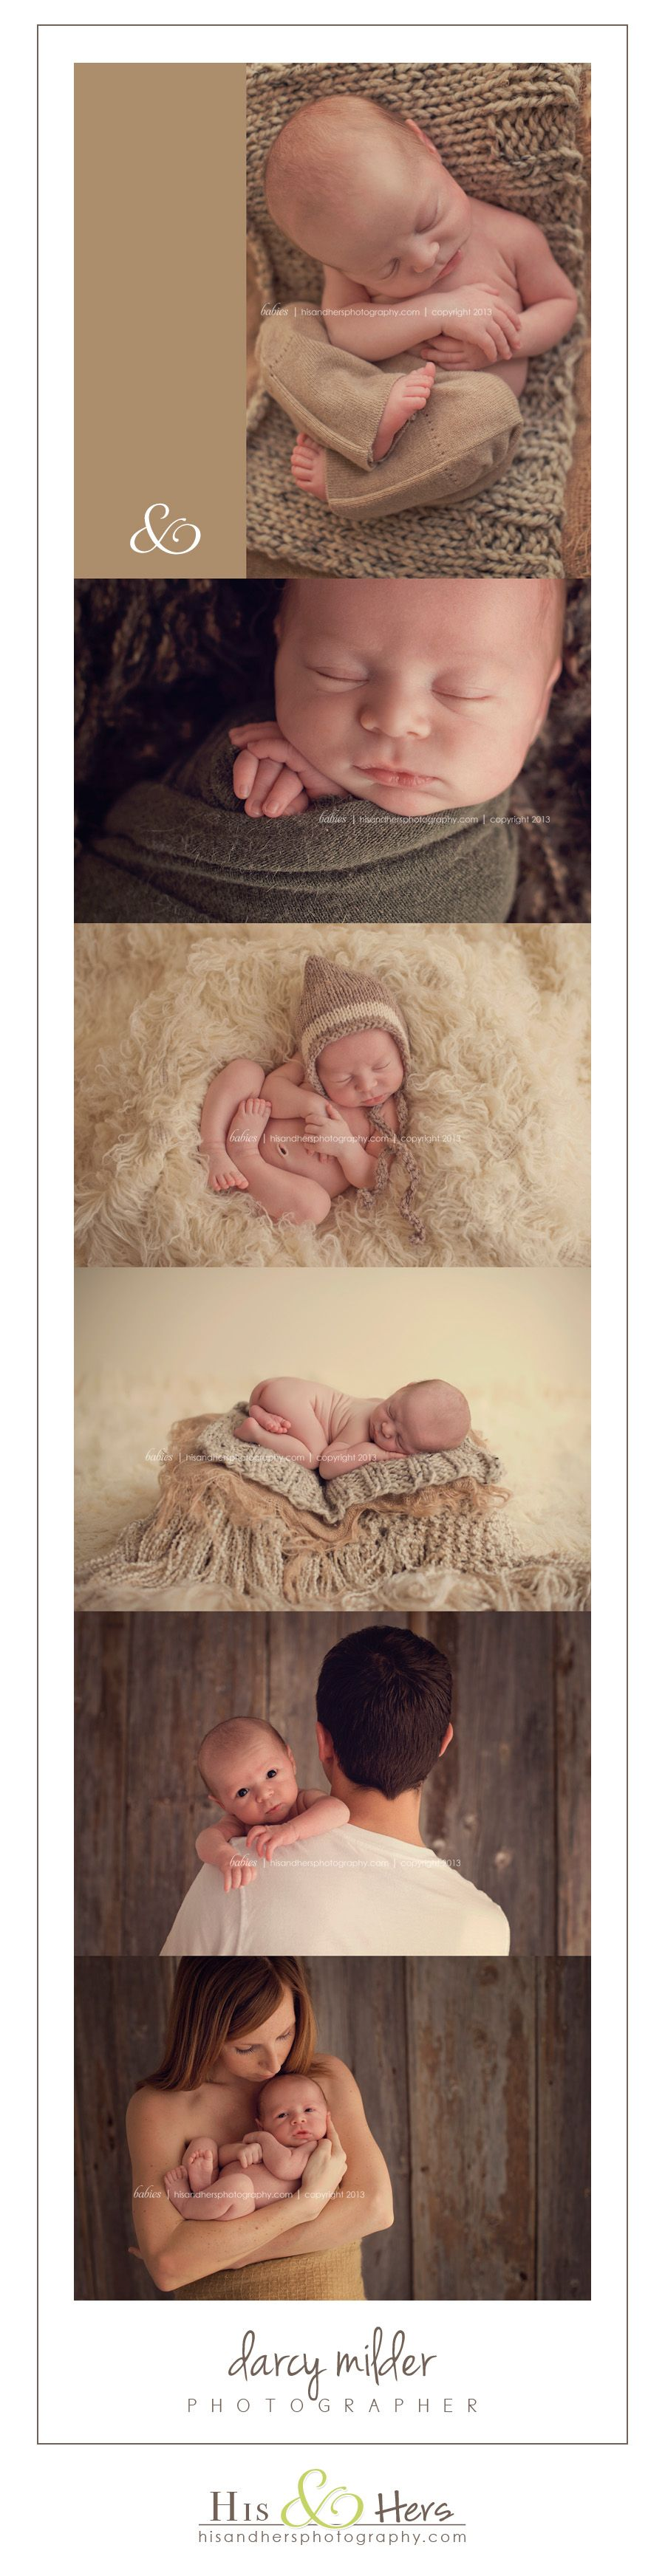 des moines iowa newborn photographer baby photographer infant photos